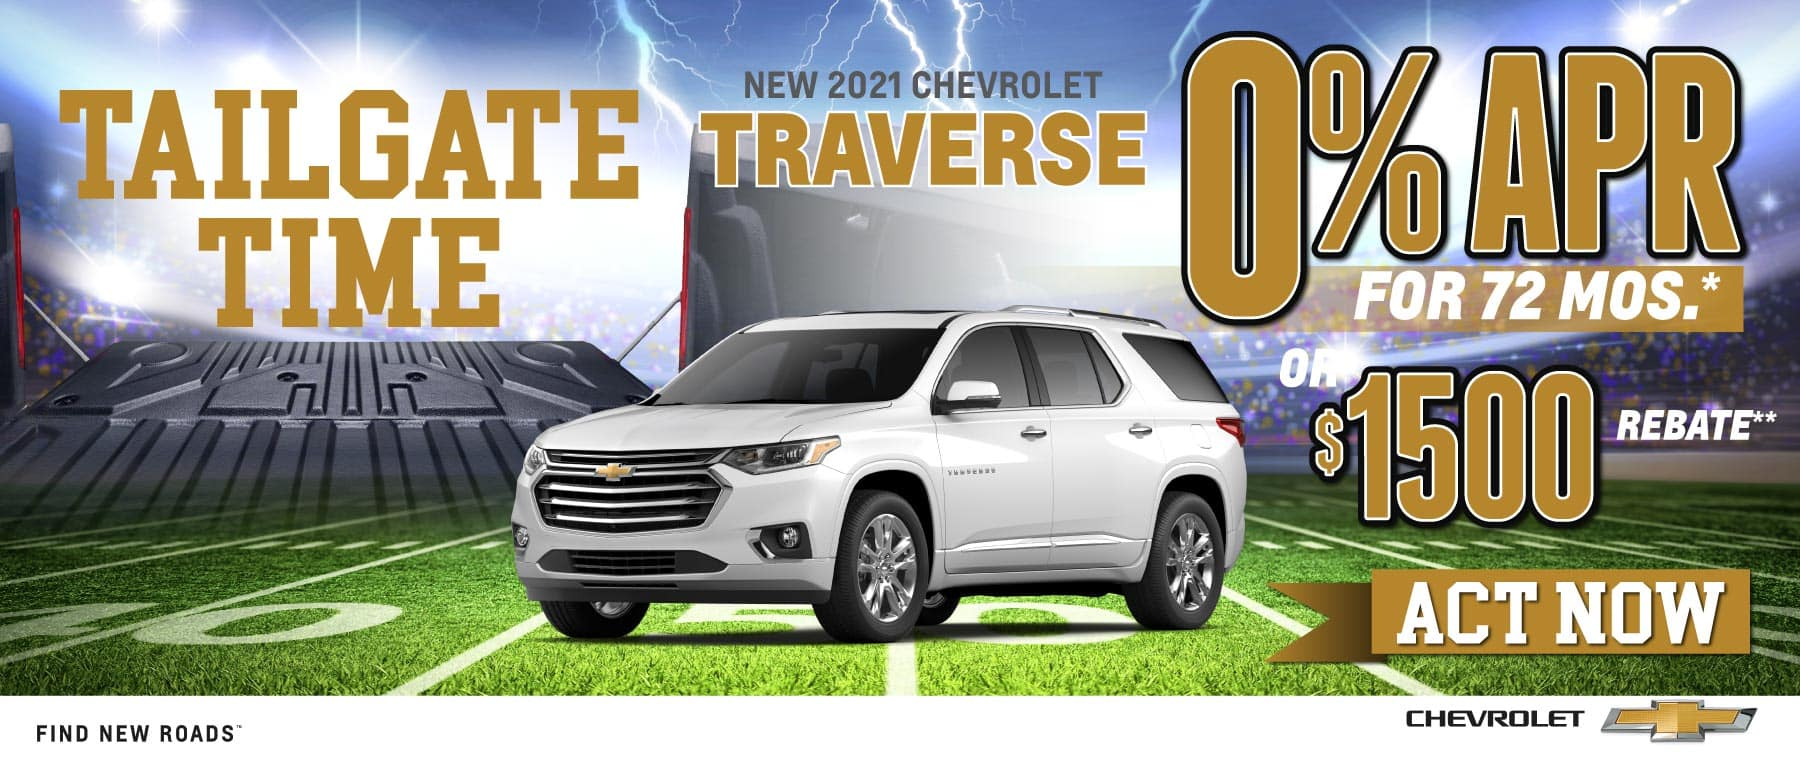 New 2021 Chevy Traverse- 0% APR for 72 months - Act Now